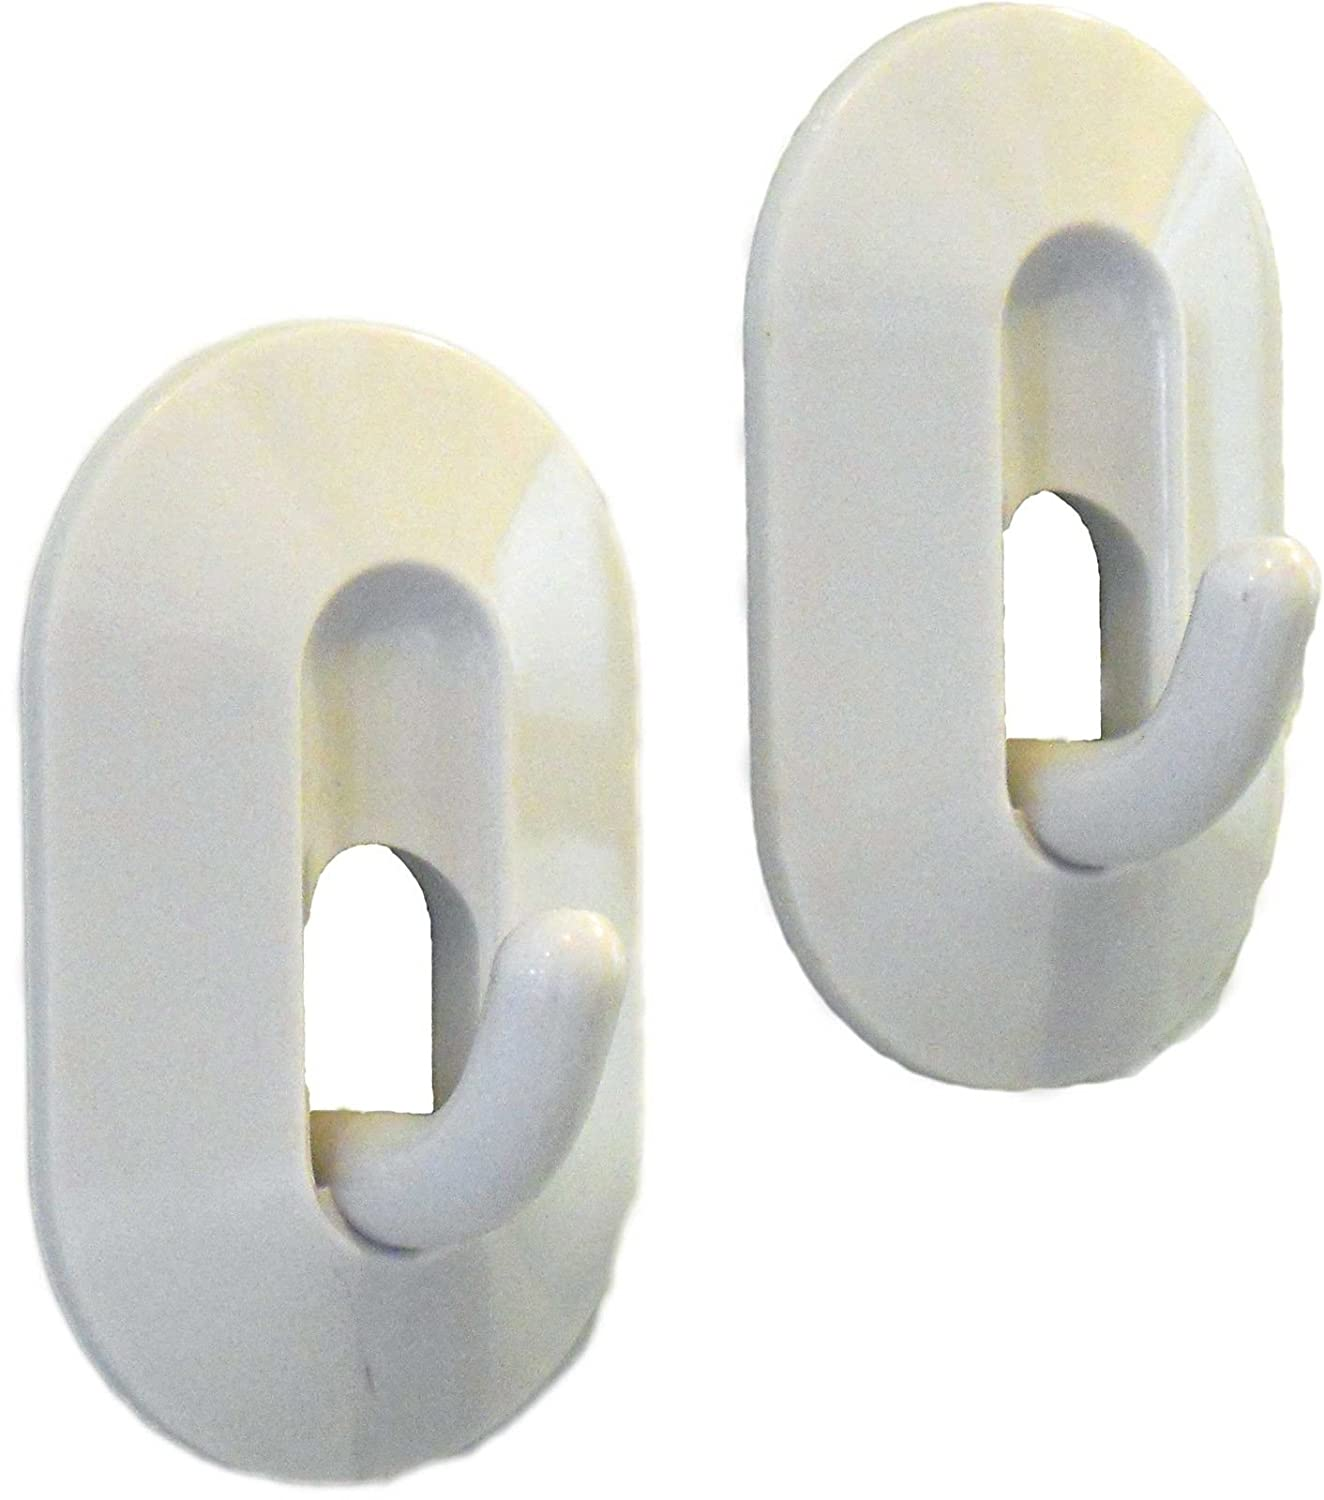 Magnetic Hooks Holder 2 Pack Kitchen Towel Pot Holder Refrigerator Hook White